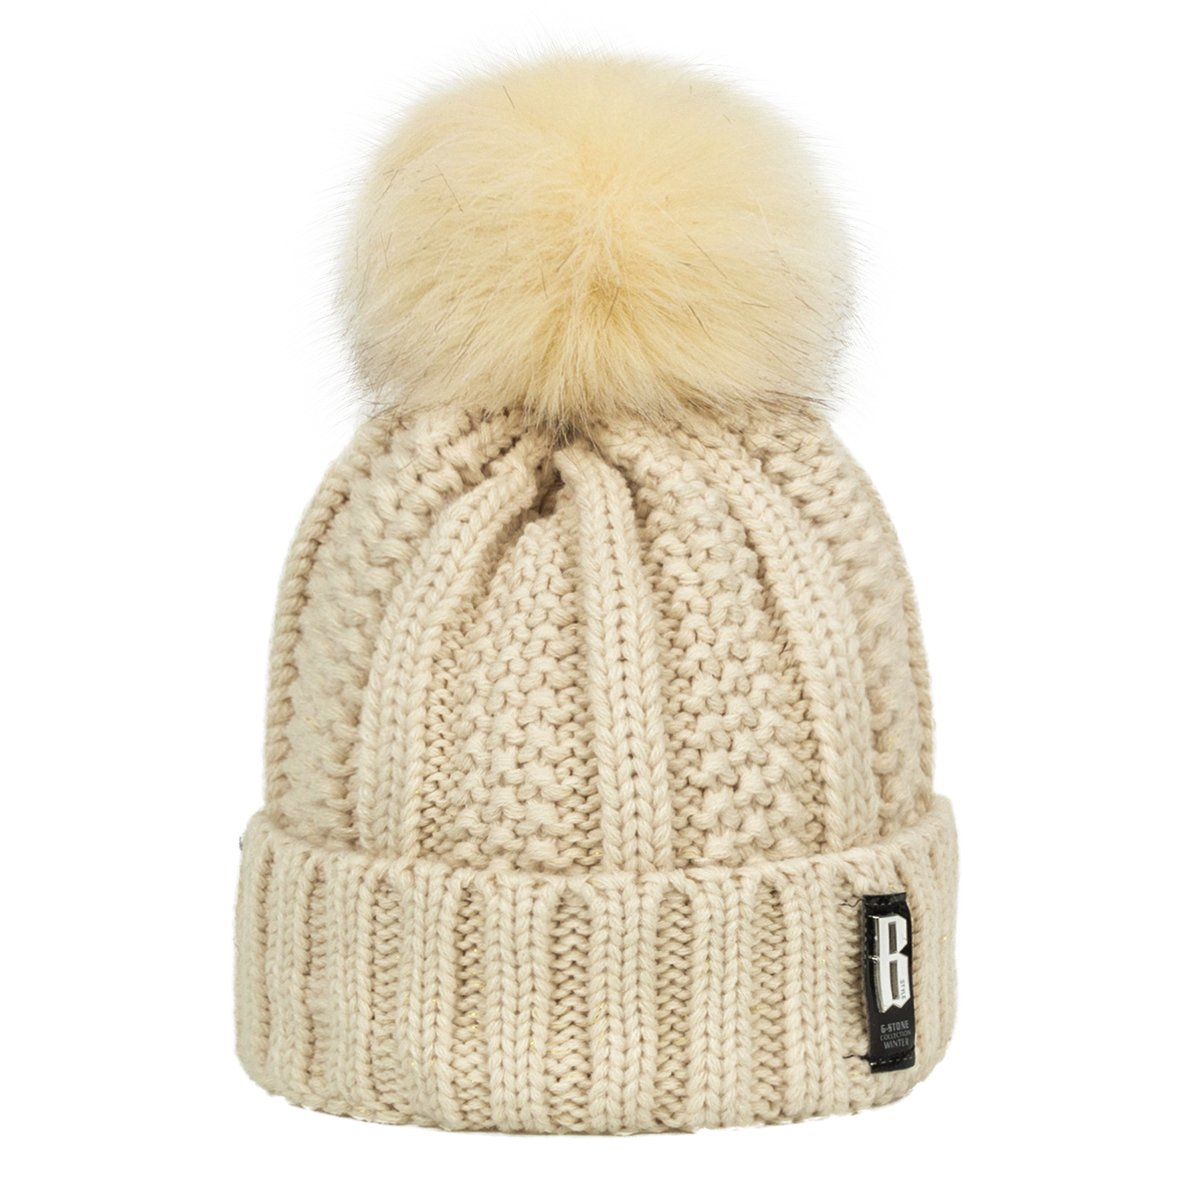 ADUO Thick Pom Beanie Hat, Women\'s Winter Fleece Lined Cable Knitted Pom Beanie Hat (Beige)